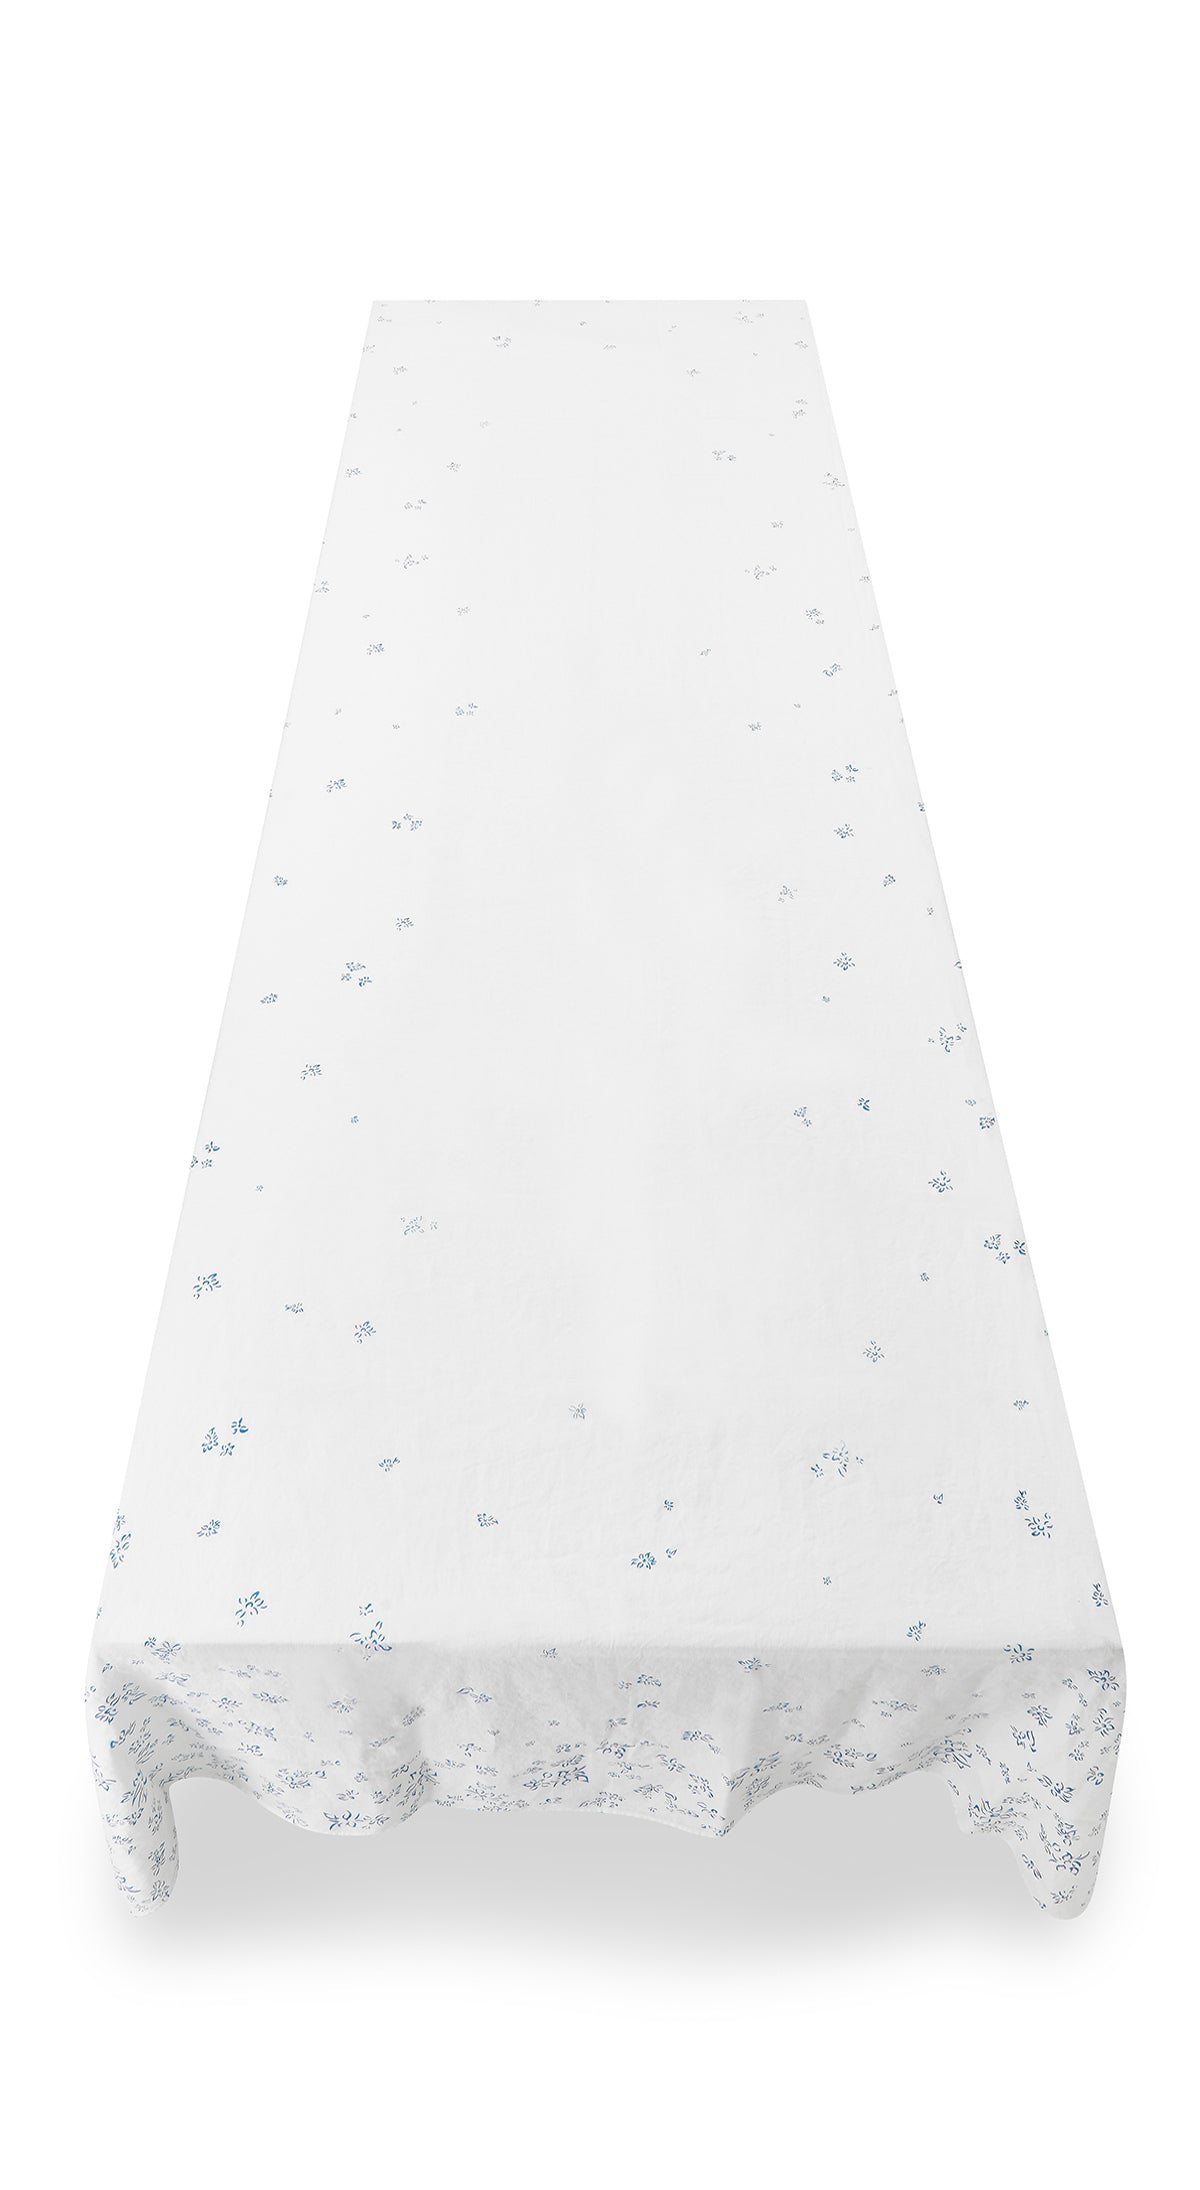 Bernadette's Falling Flower Linen Tablecloth in Light Blue